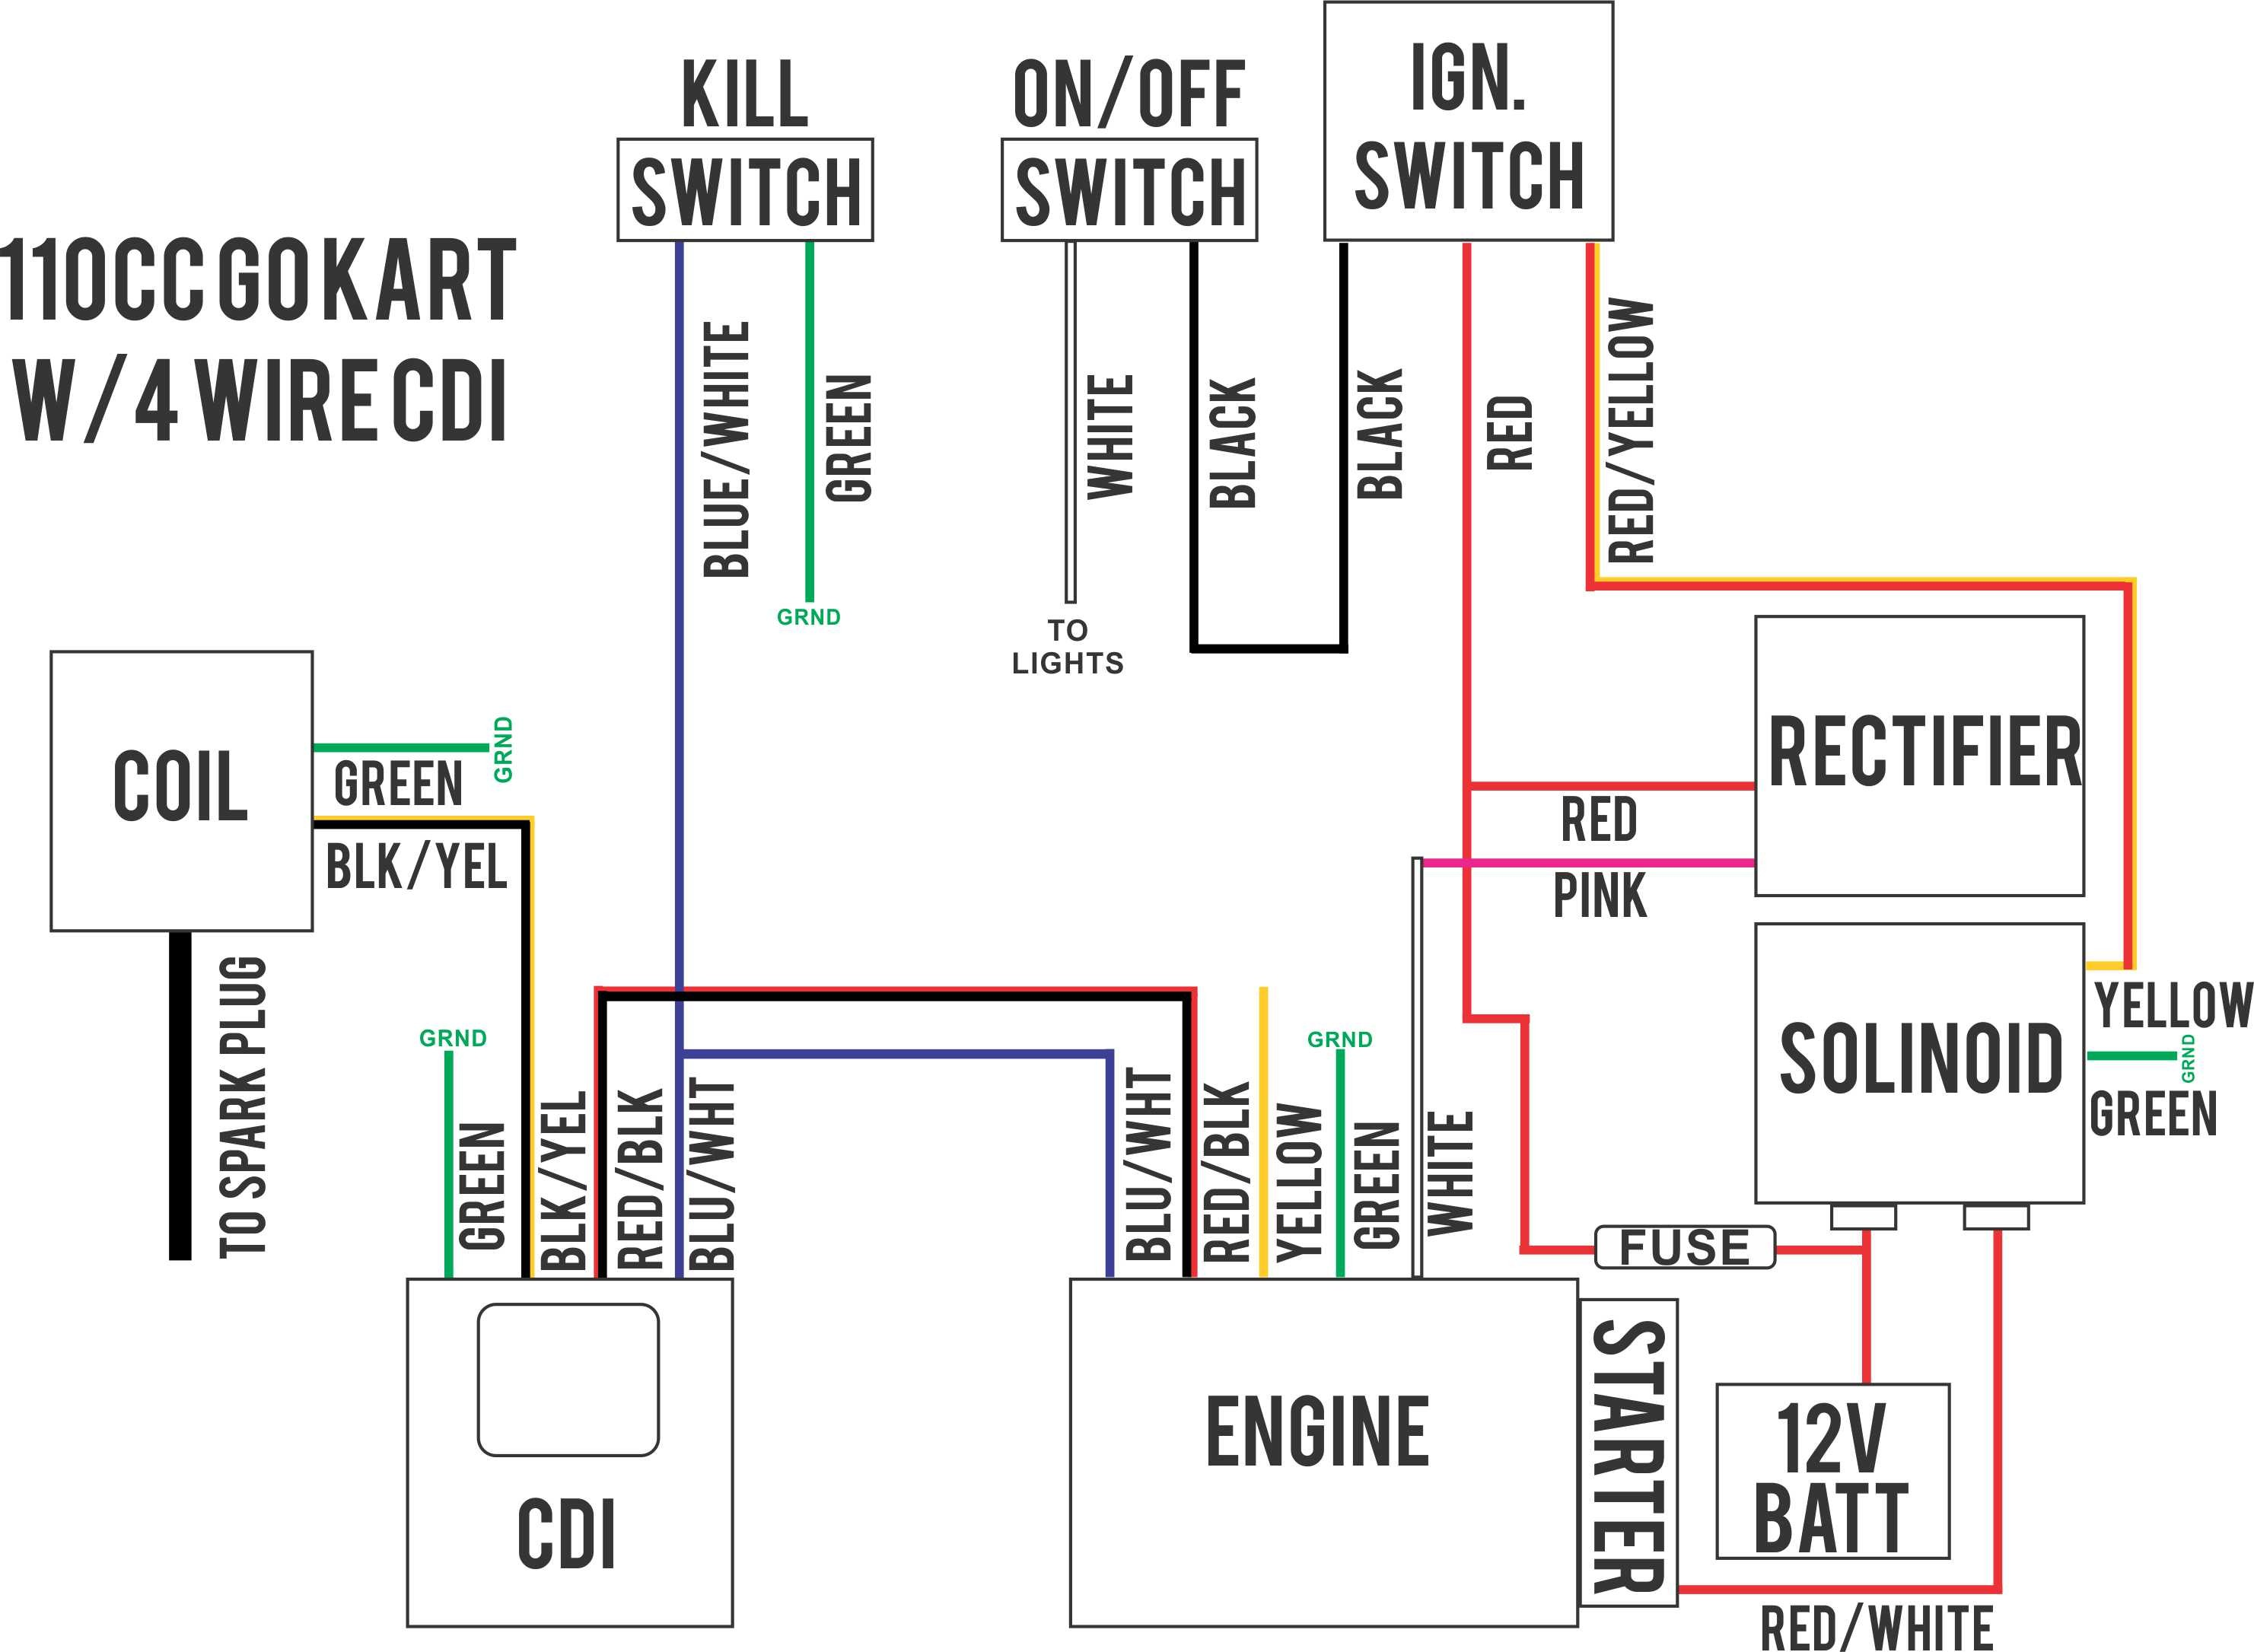 00 Foreman Wiring Diagram | Digital Resources on